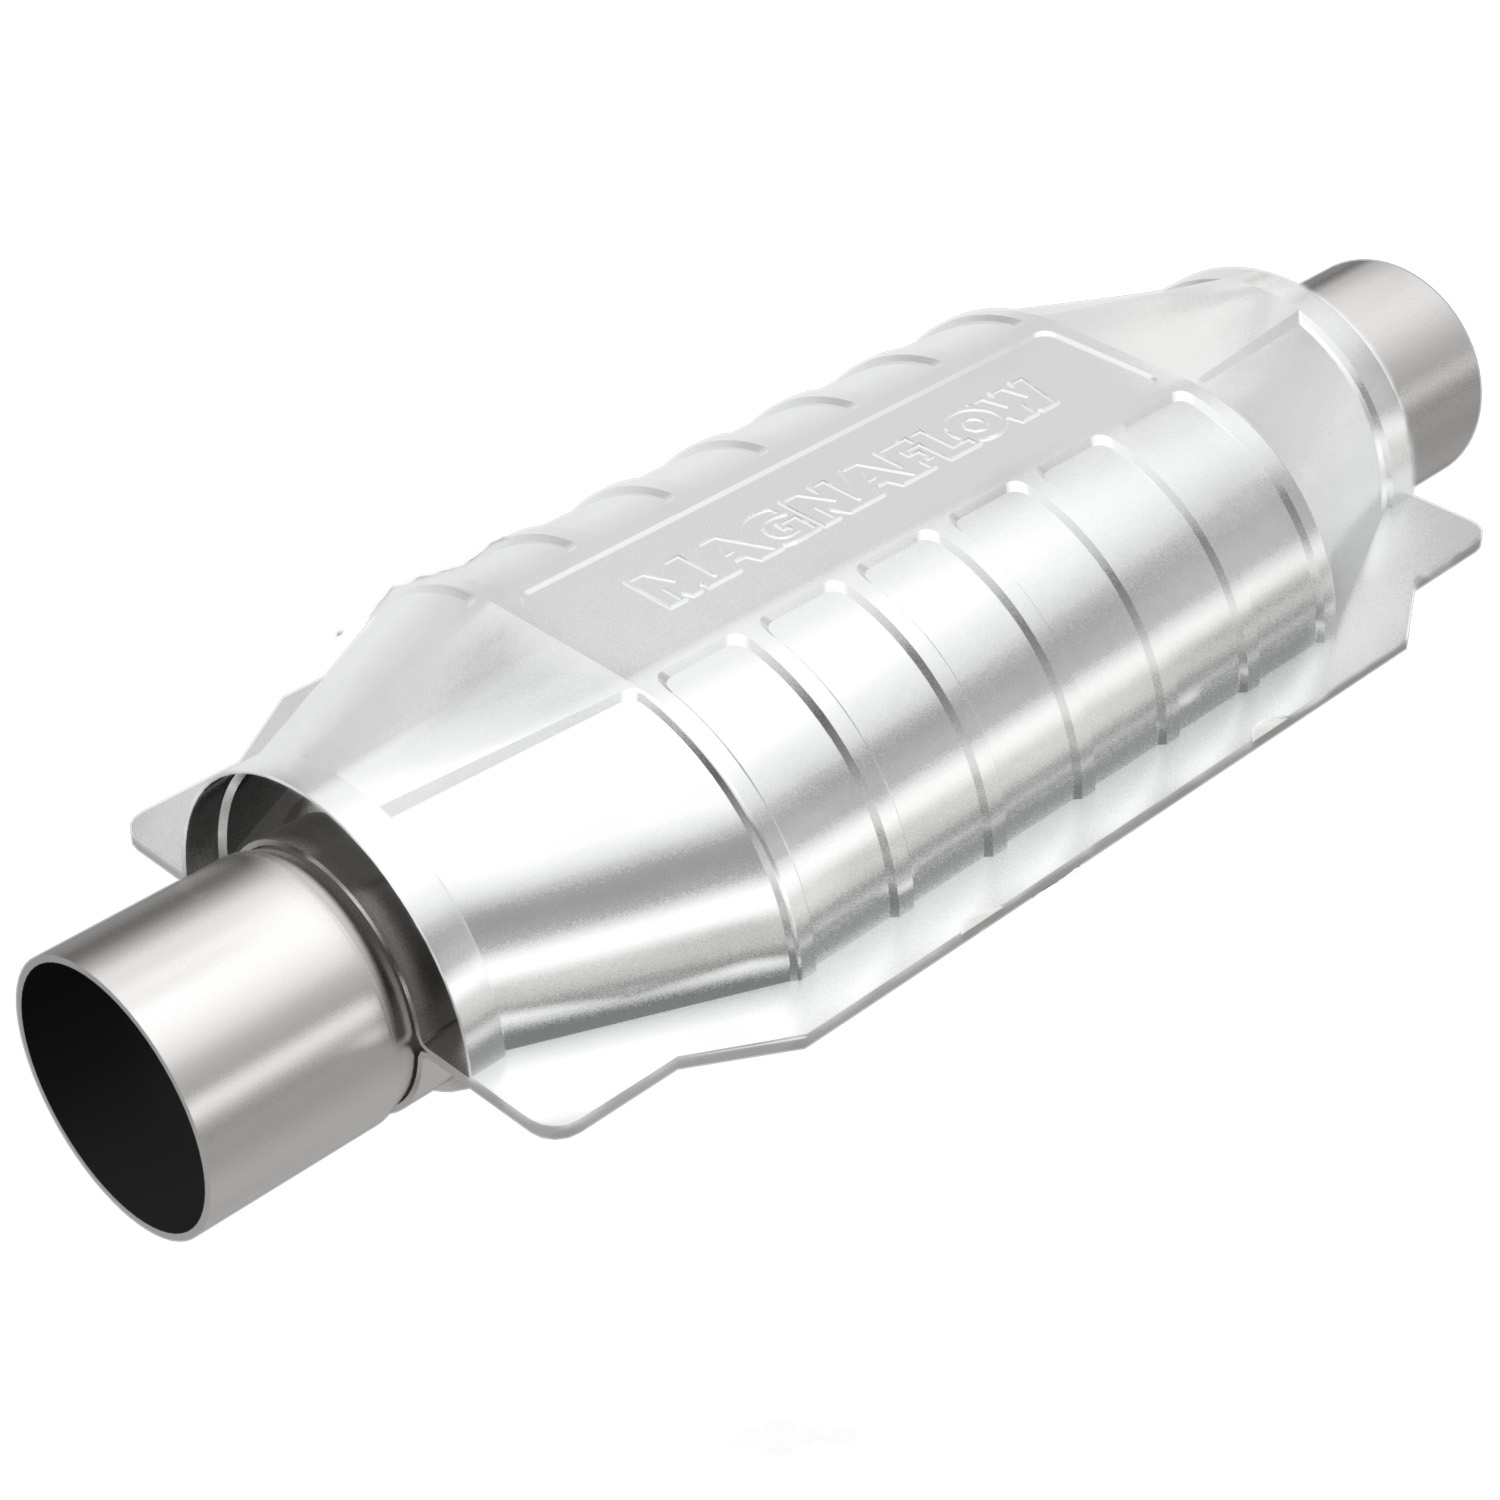 MAGNAFLOW CARB COMPLIANT CONVERTER - 2.50in. Universal California Pre-OBDII Catalytic Converter - MFC 334006